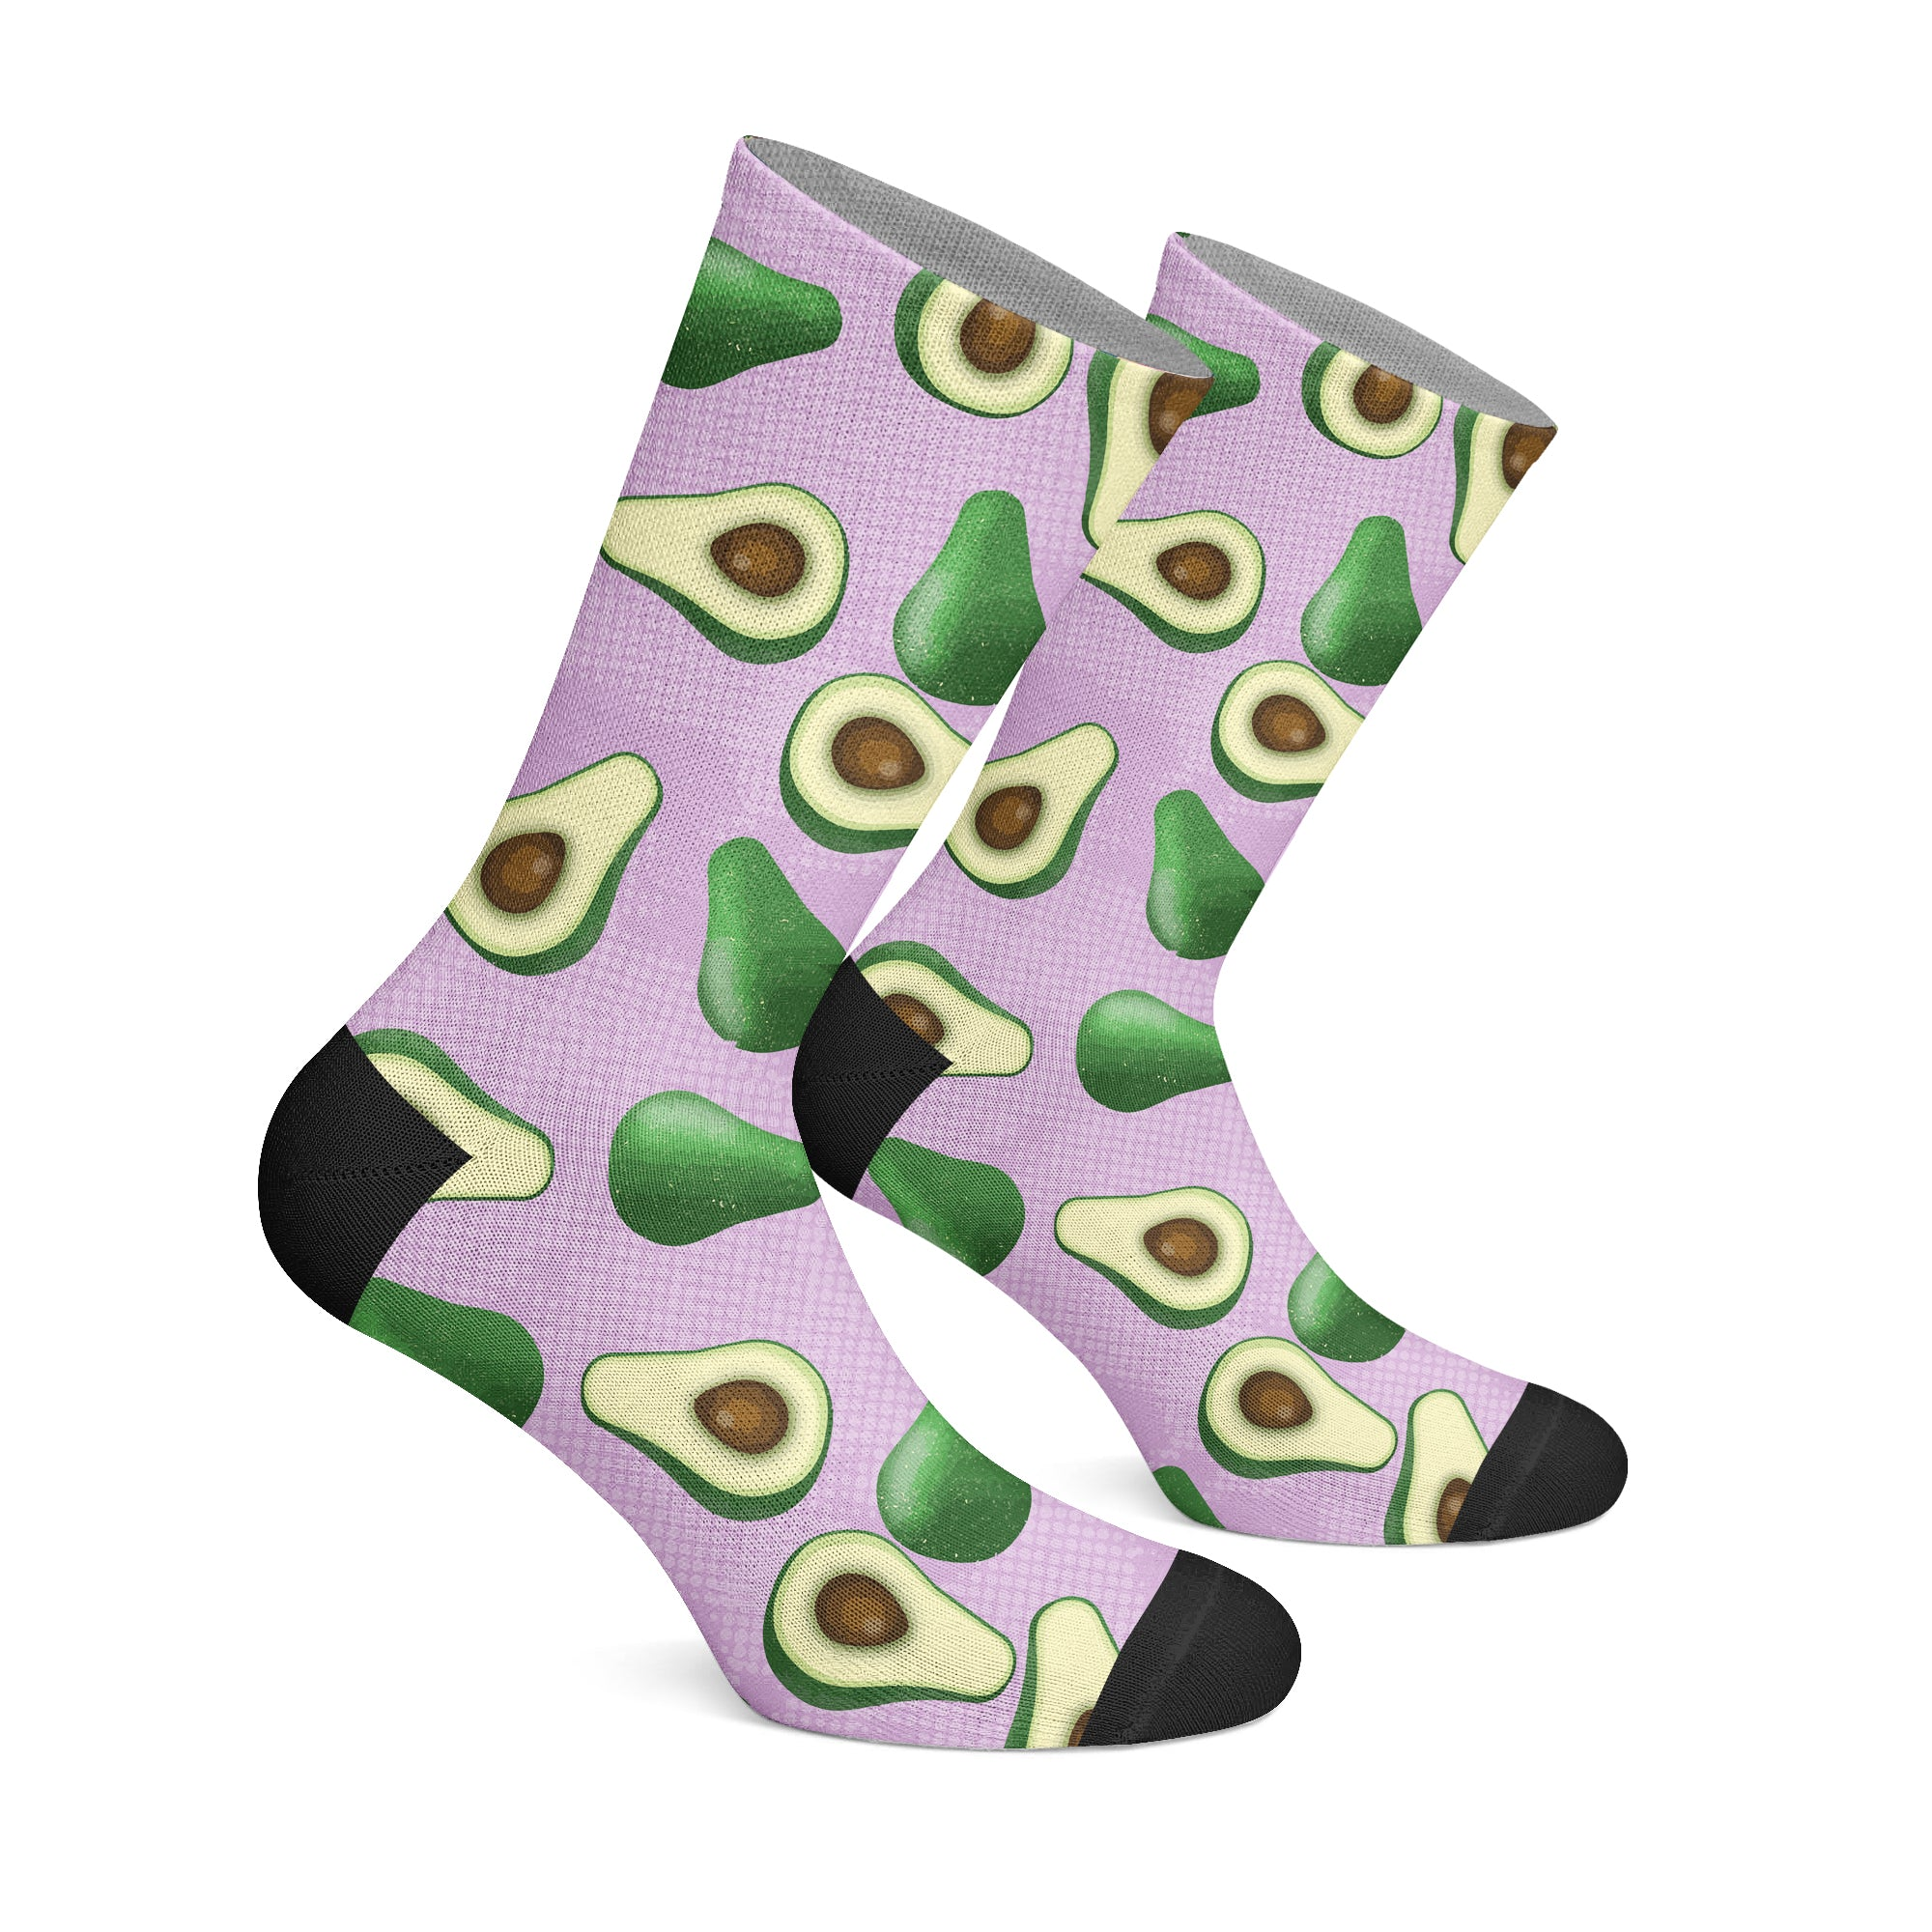 Avocados - Socks